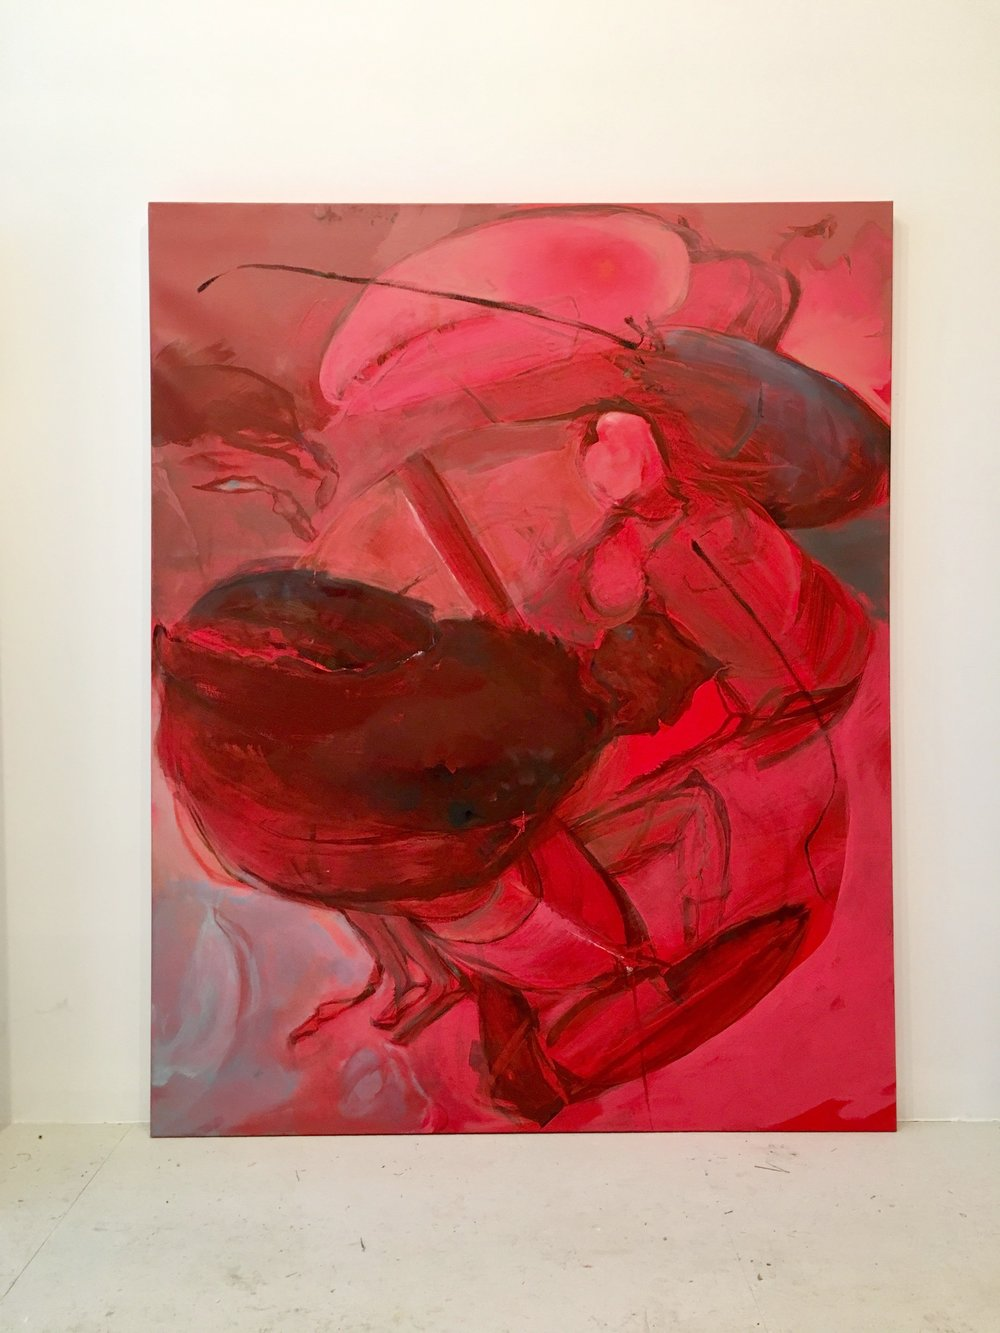 oil, lacquer, liquid rubber and house paint on canvas 60x48